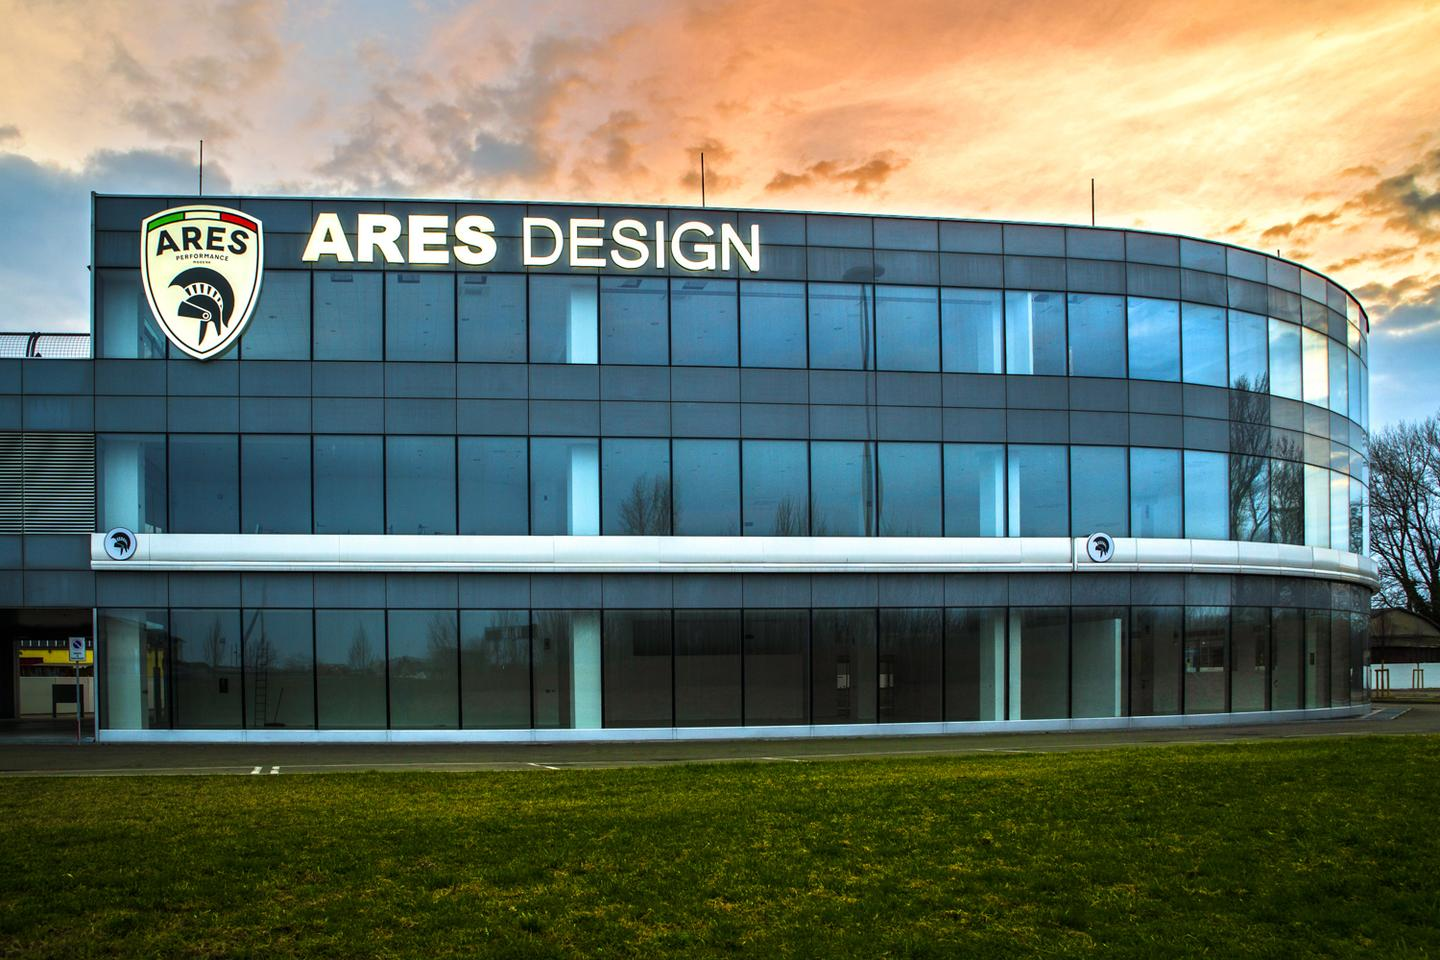 Ares this year moved into a 190K sq ft manufacturing facility in Modena, Italy